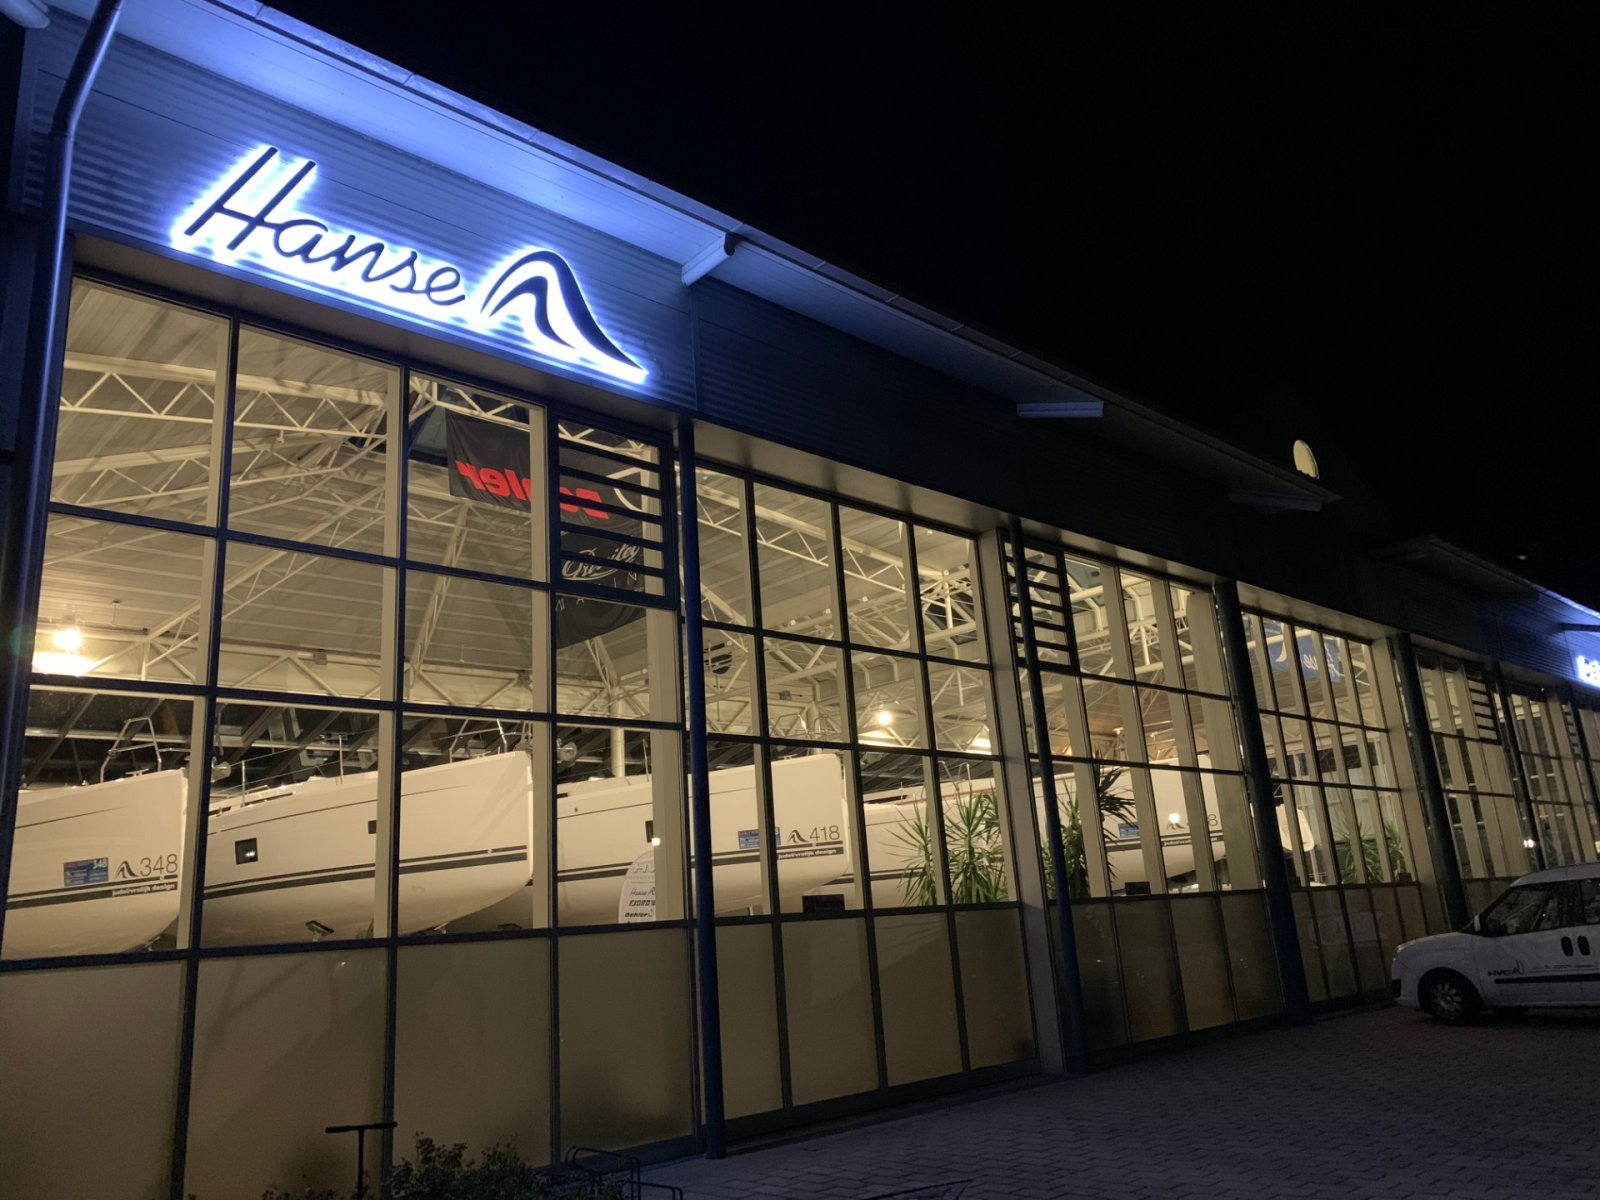 HVG Showroom in Bernau am Chiemsee